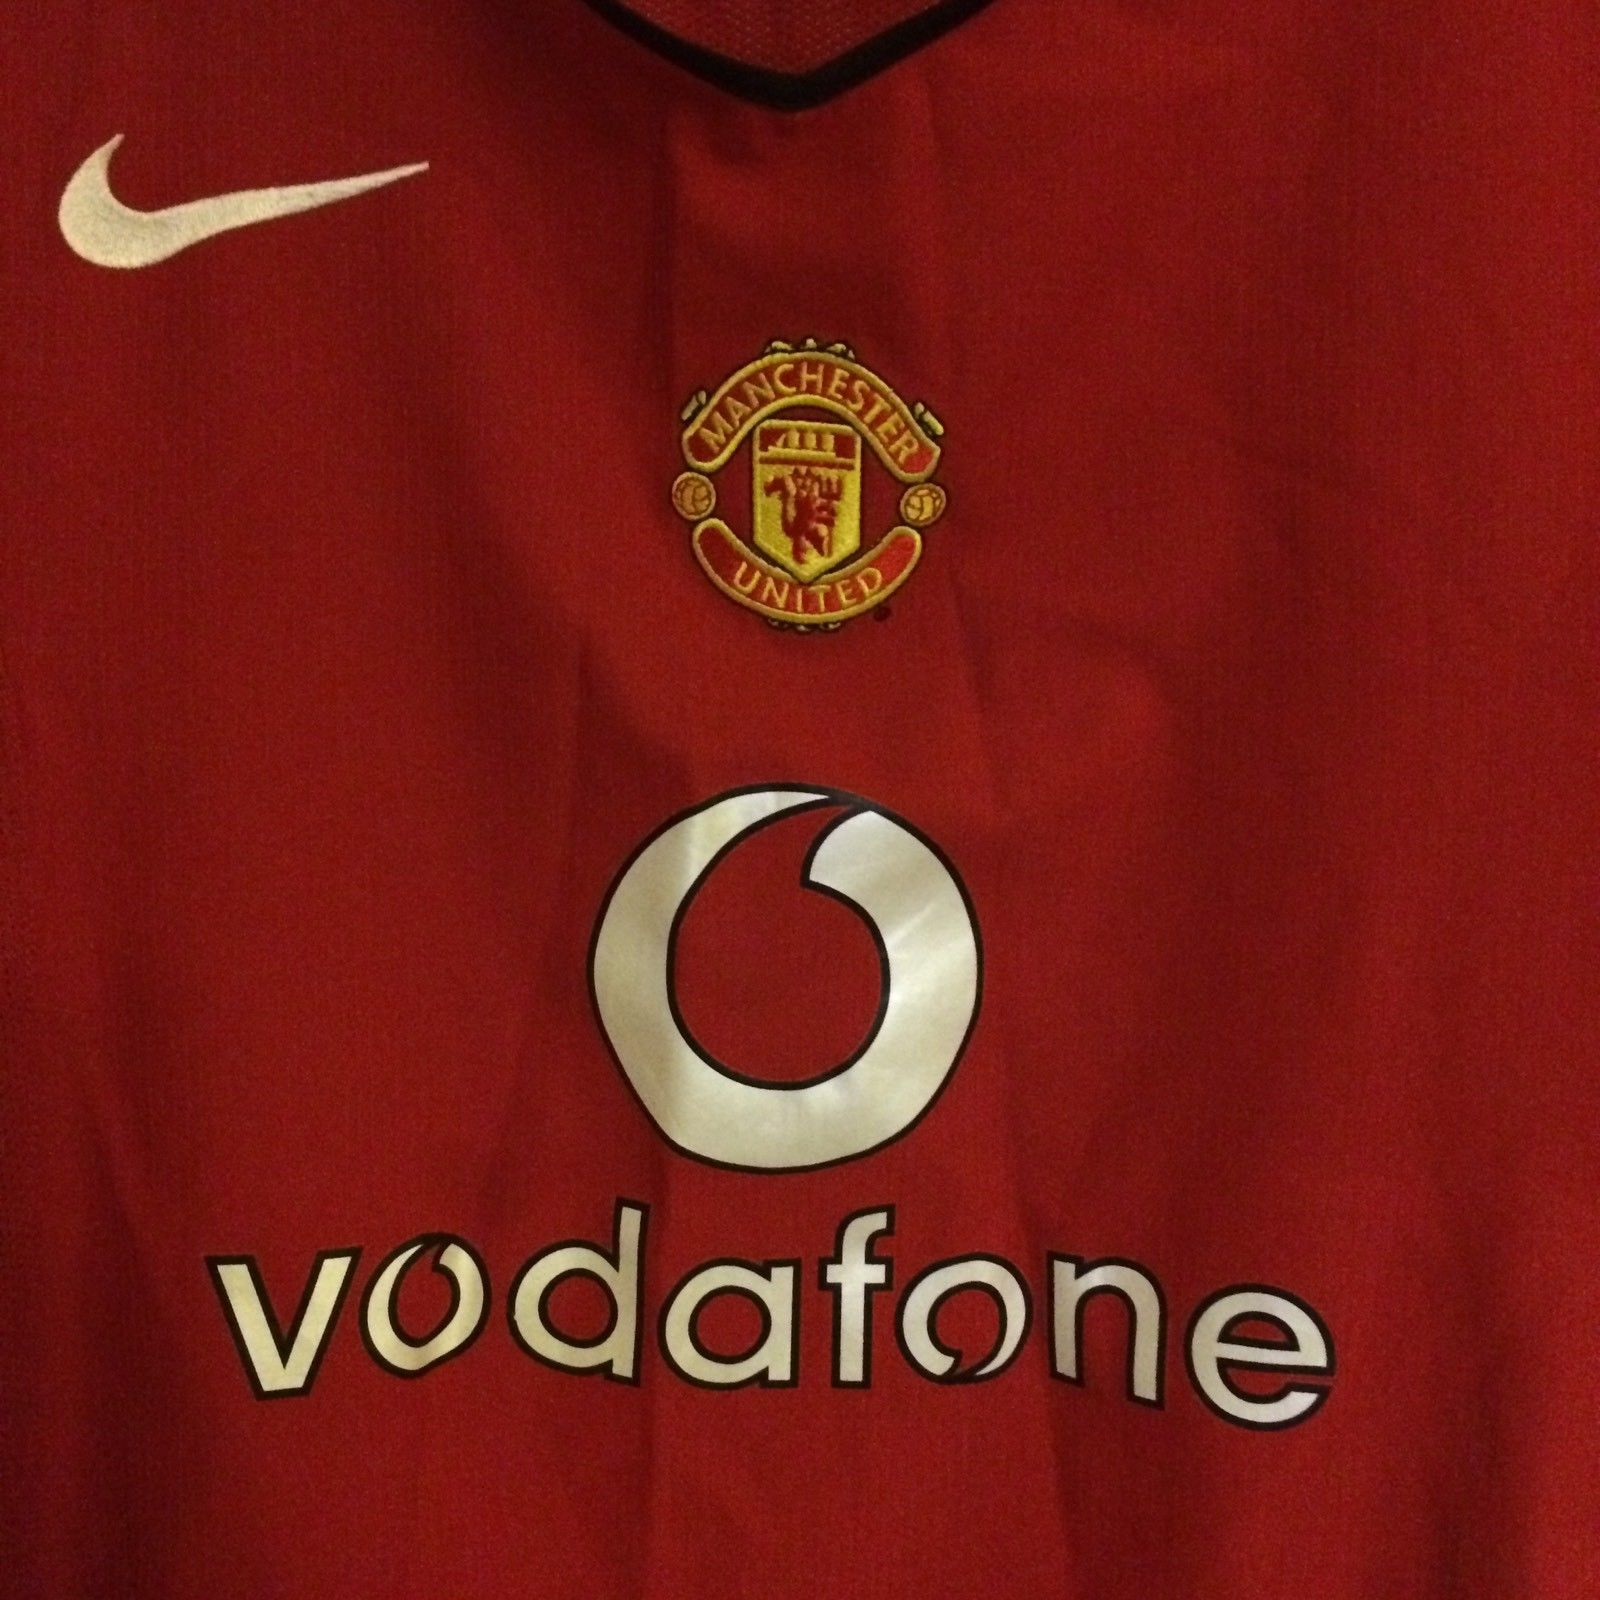 Manchester United Wayne Rooney 8 Football Shirt 2004 06 Adults Large Nike.  🔍. instock ea1ccdb04